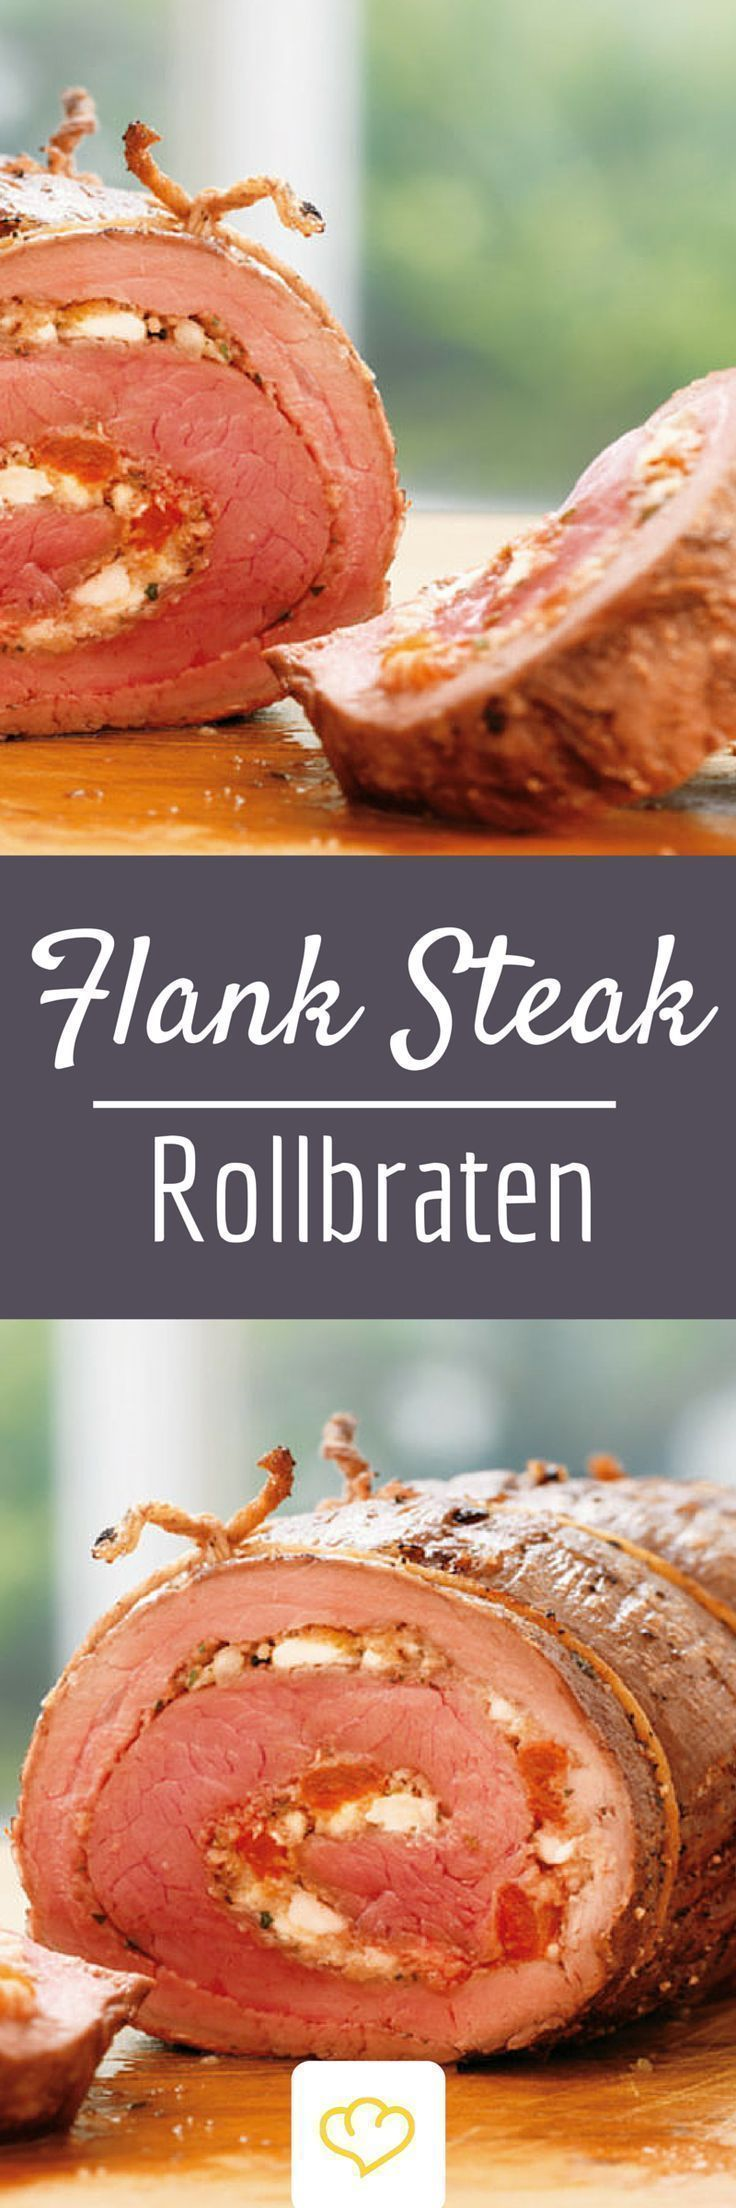 Ever heard of flank steak? We will try it! What do you ......  - Burger - #Burger #Flank #heard #Steak #recipesforflanksteak Ever heard of flank steak? We will try it! What do you ......  - Burger - #Burger #Flank #heard #Steak #flanksteaktacos Ever heard of flank steak? We will try it! What do you ......  - Burger - #Burger #Flank #heard #Steak #recipesforflanksteak Ever heard of flank steak? We will try it! What do you ......  - Burger - #Burger #Flank #heard #Steak #flanksteaktacos Ever heard #flanksteaktacos